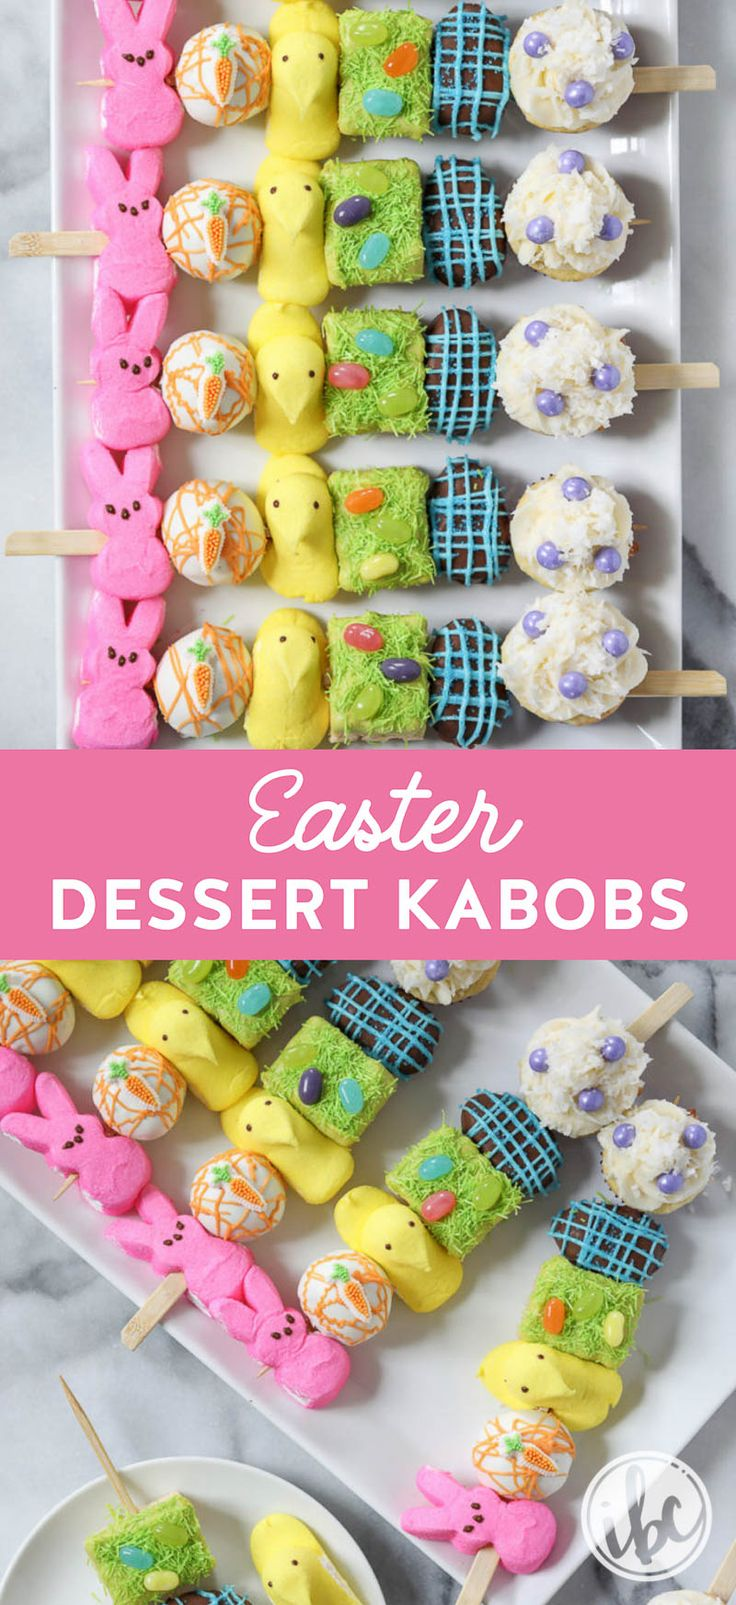 Easter Dessert Kabobs - all your favorite Easter desserts at once! #easter #dessert #recipe #spring #peeps